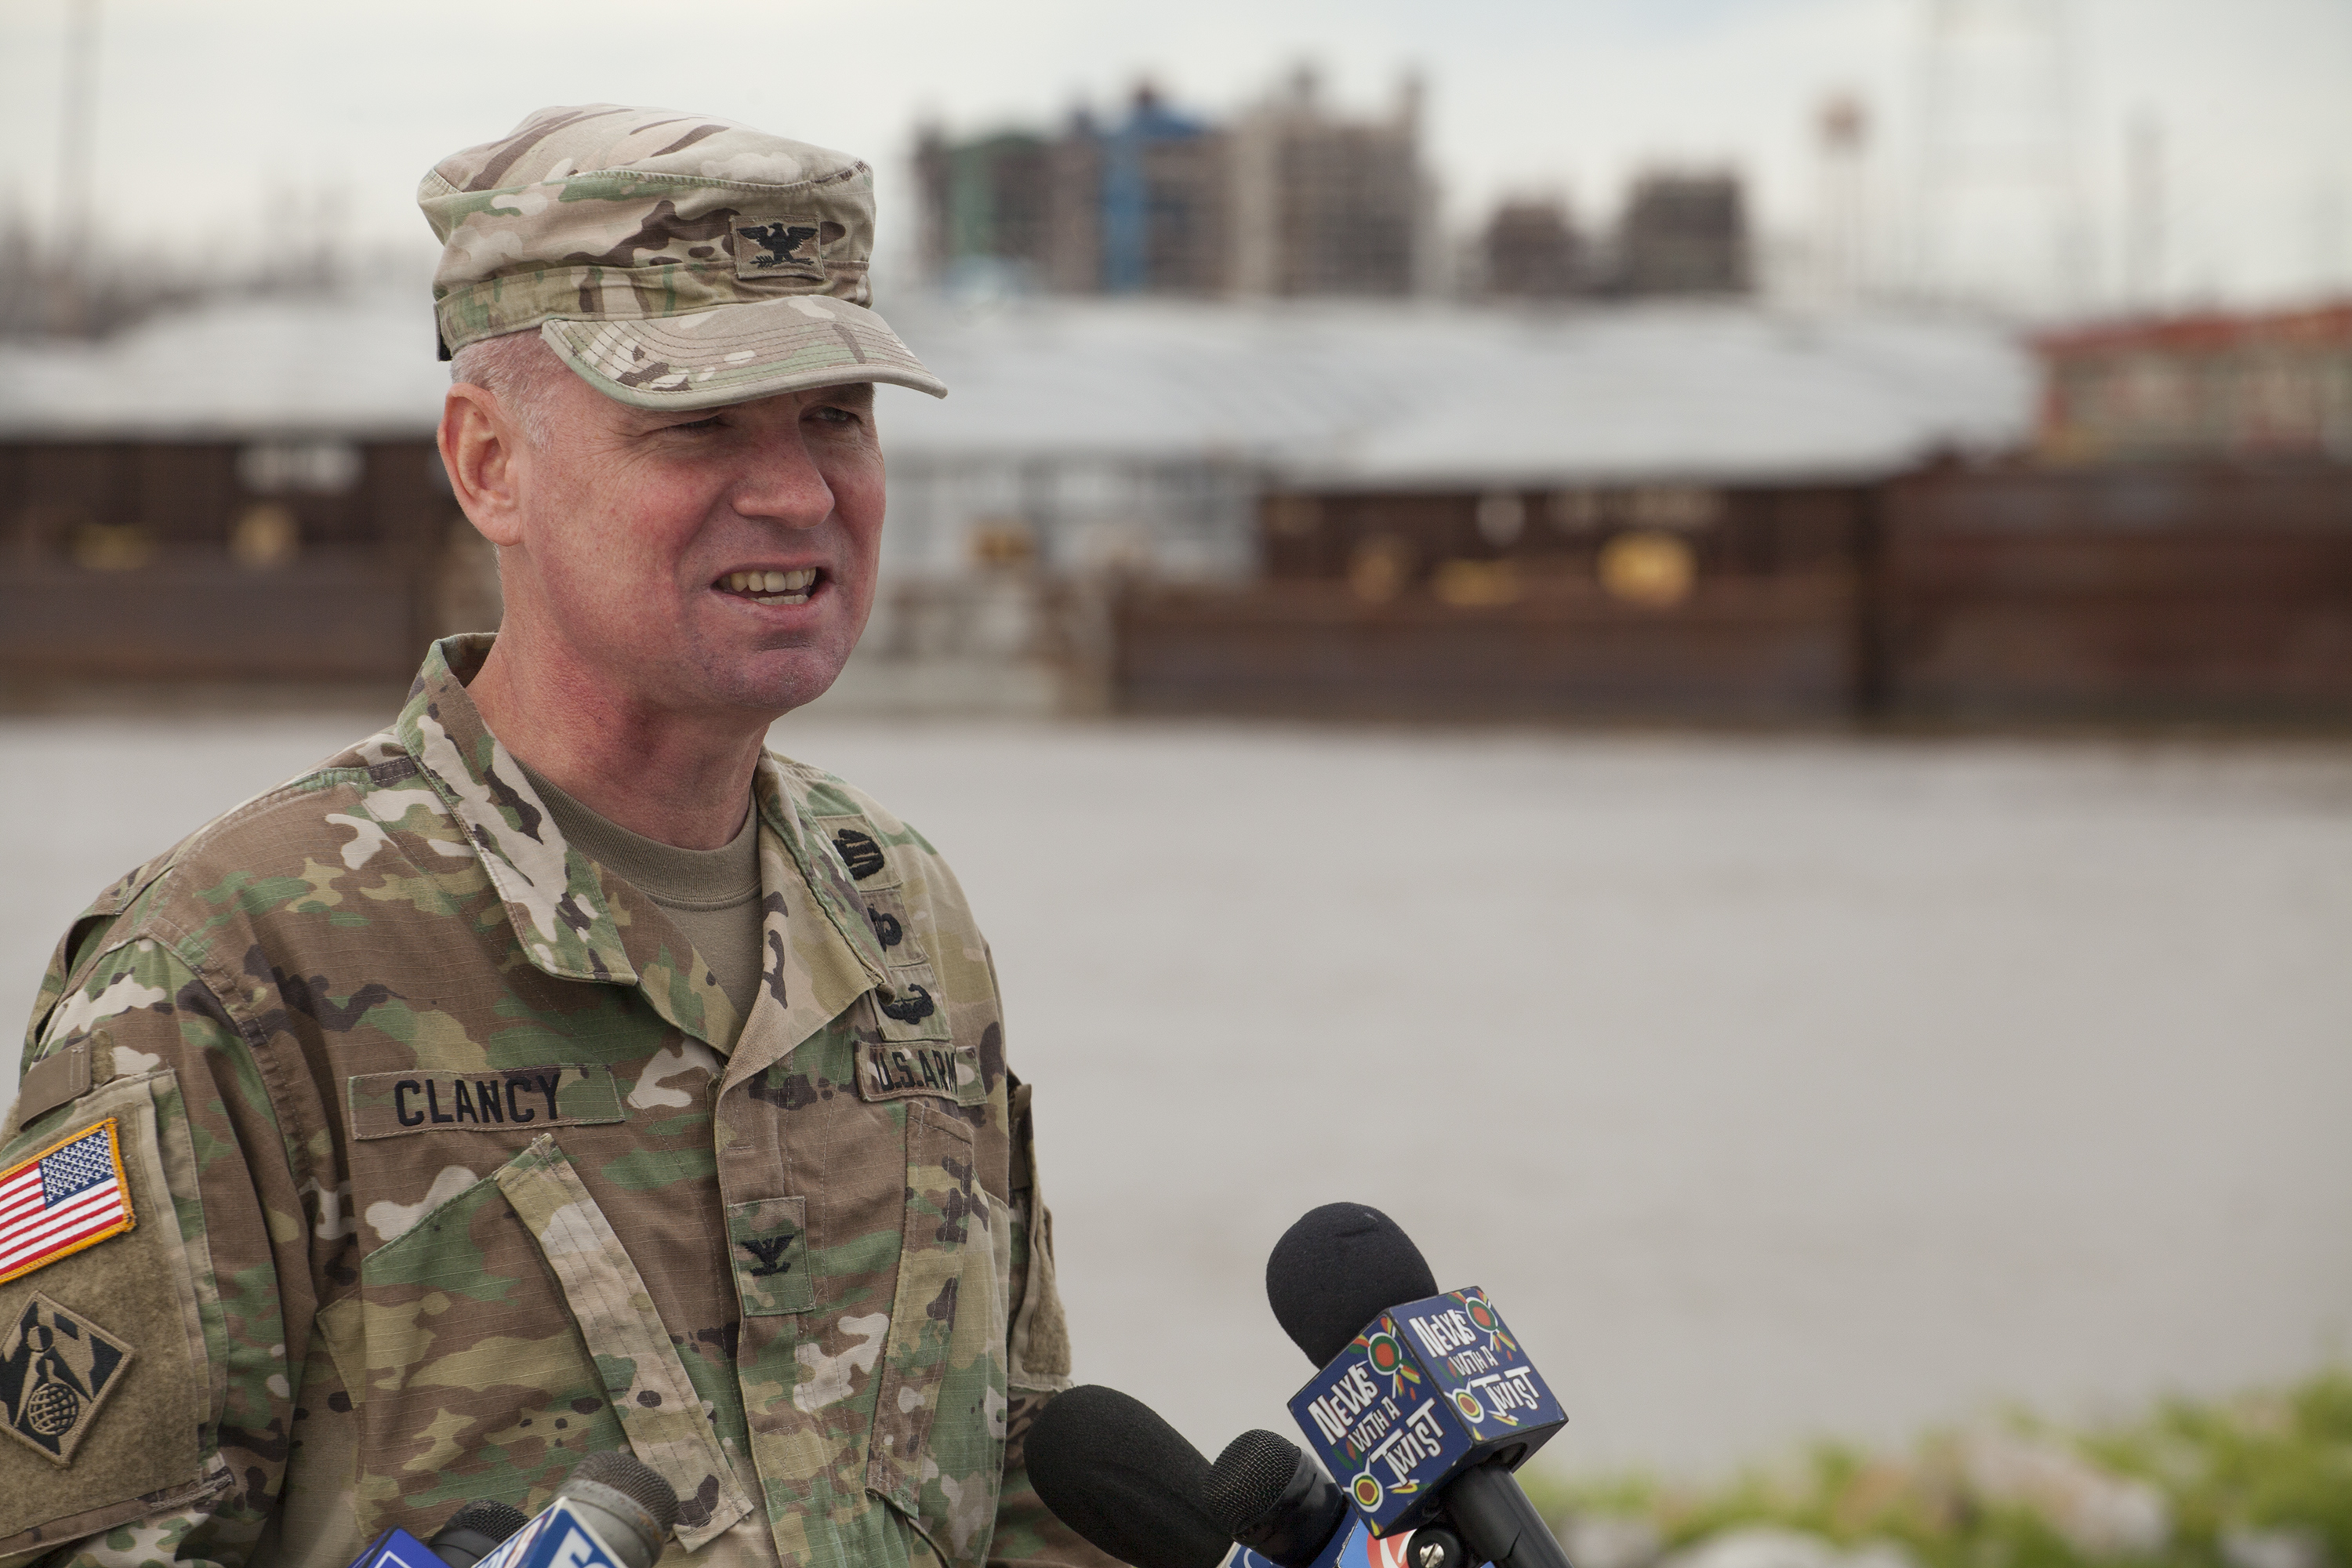 Col. Michael Clancy, commander of the New Orleans Engineer District, stands outside the Corps office in New Orleans February 25 to announce the decision to open the Bonnet Carré Spillway on February 27.